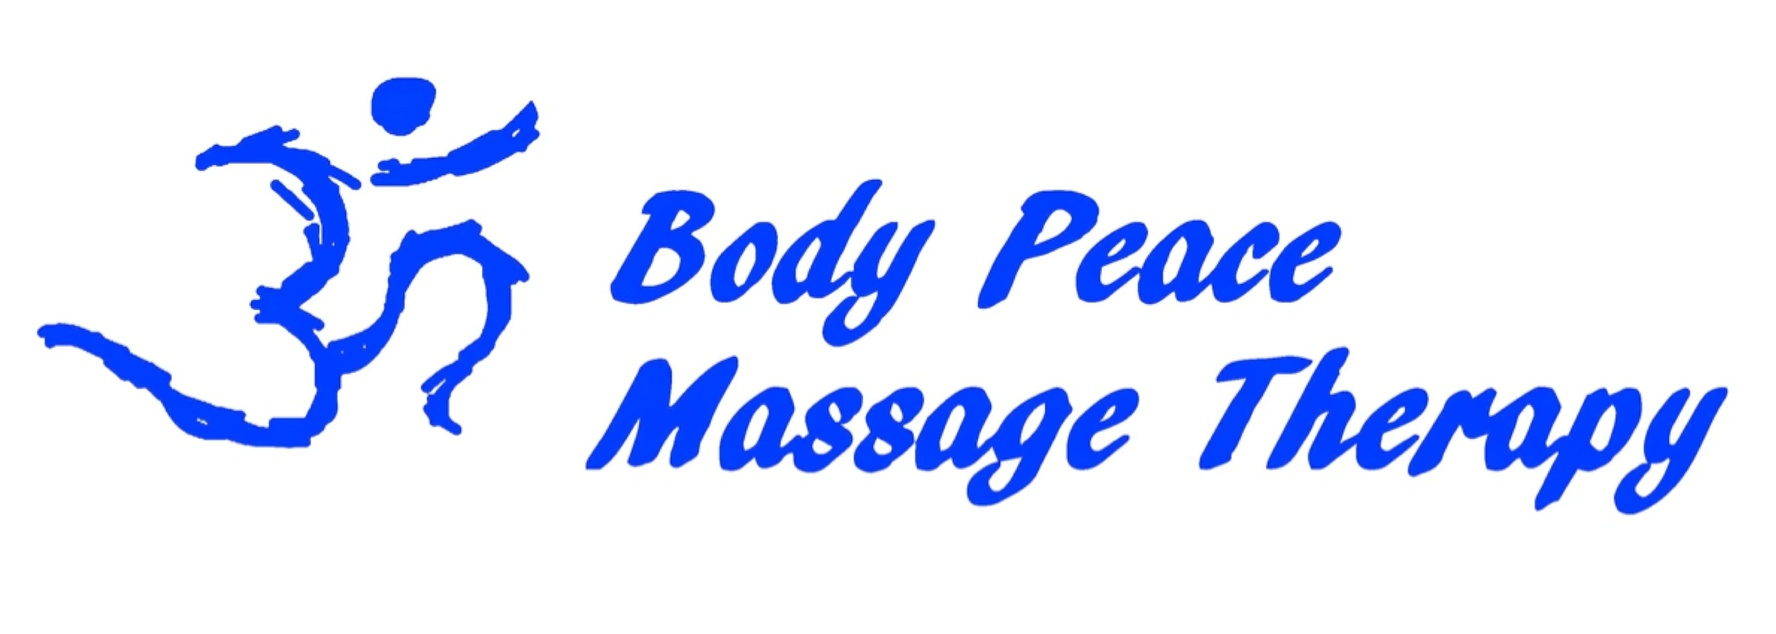 Body Peace Massage Therapy